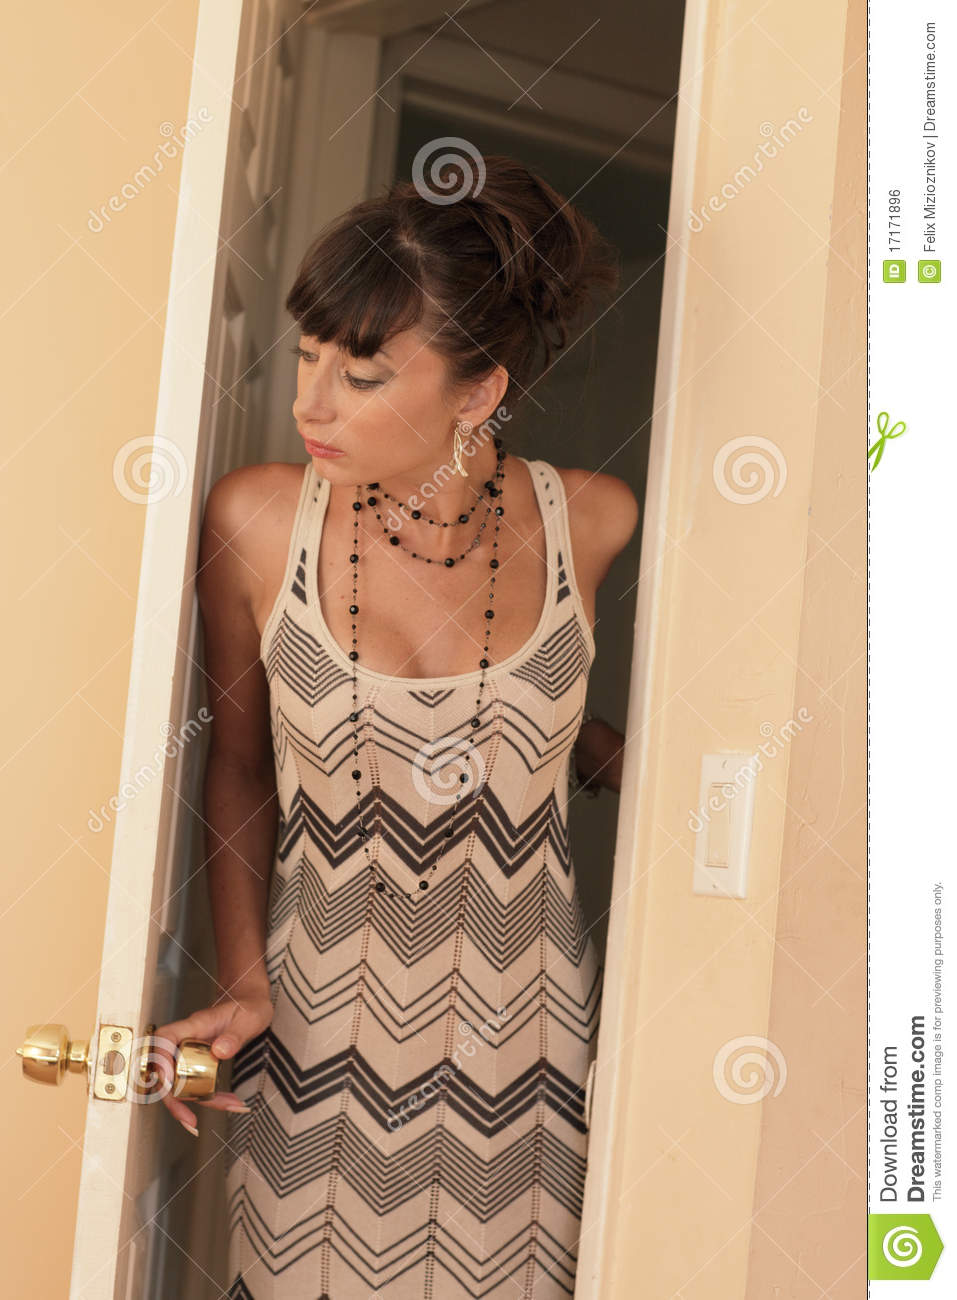 Woman Looking Into A Room Royalty Free Stock Image